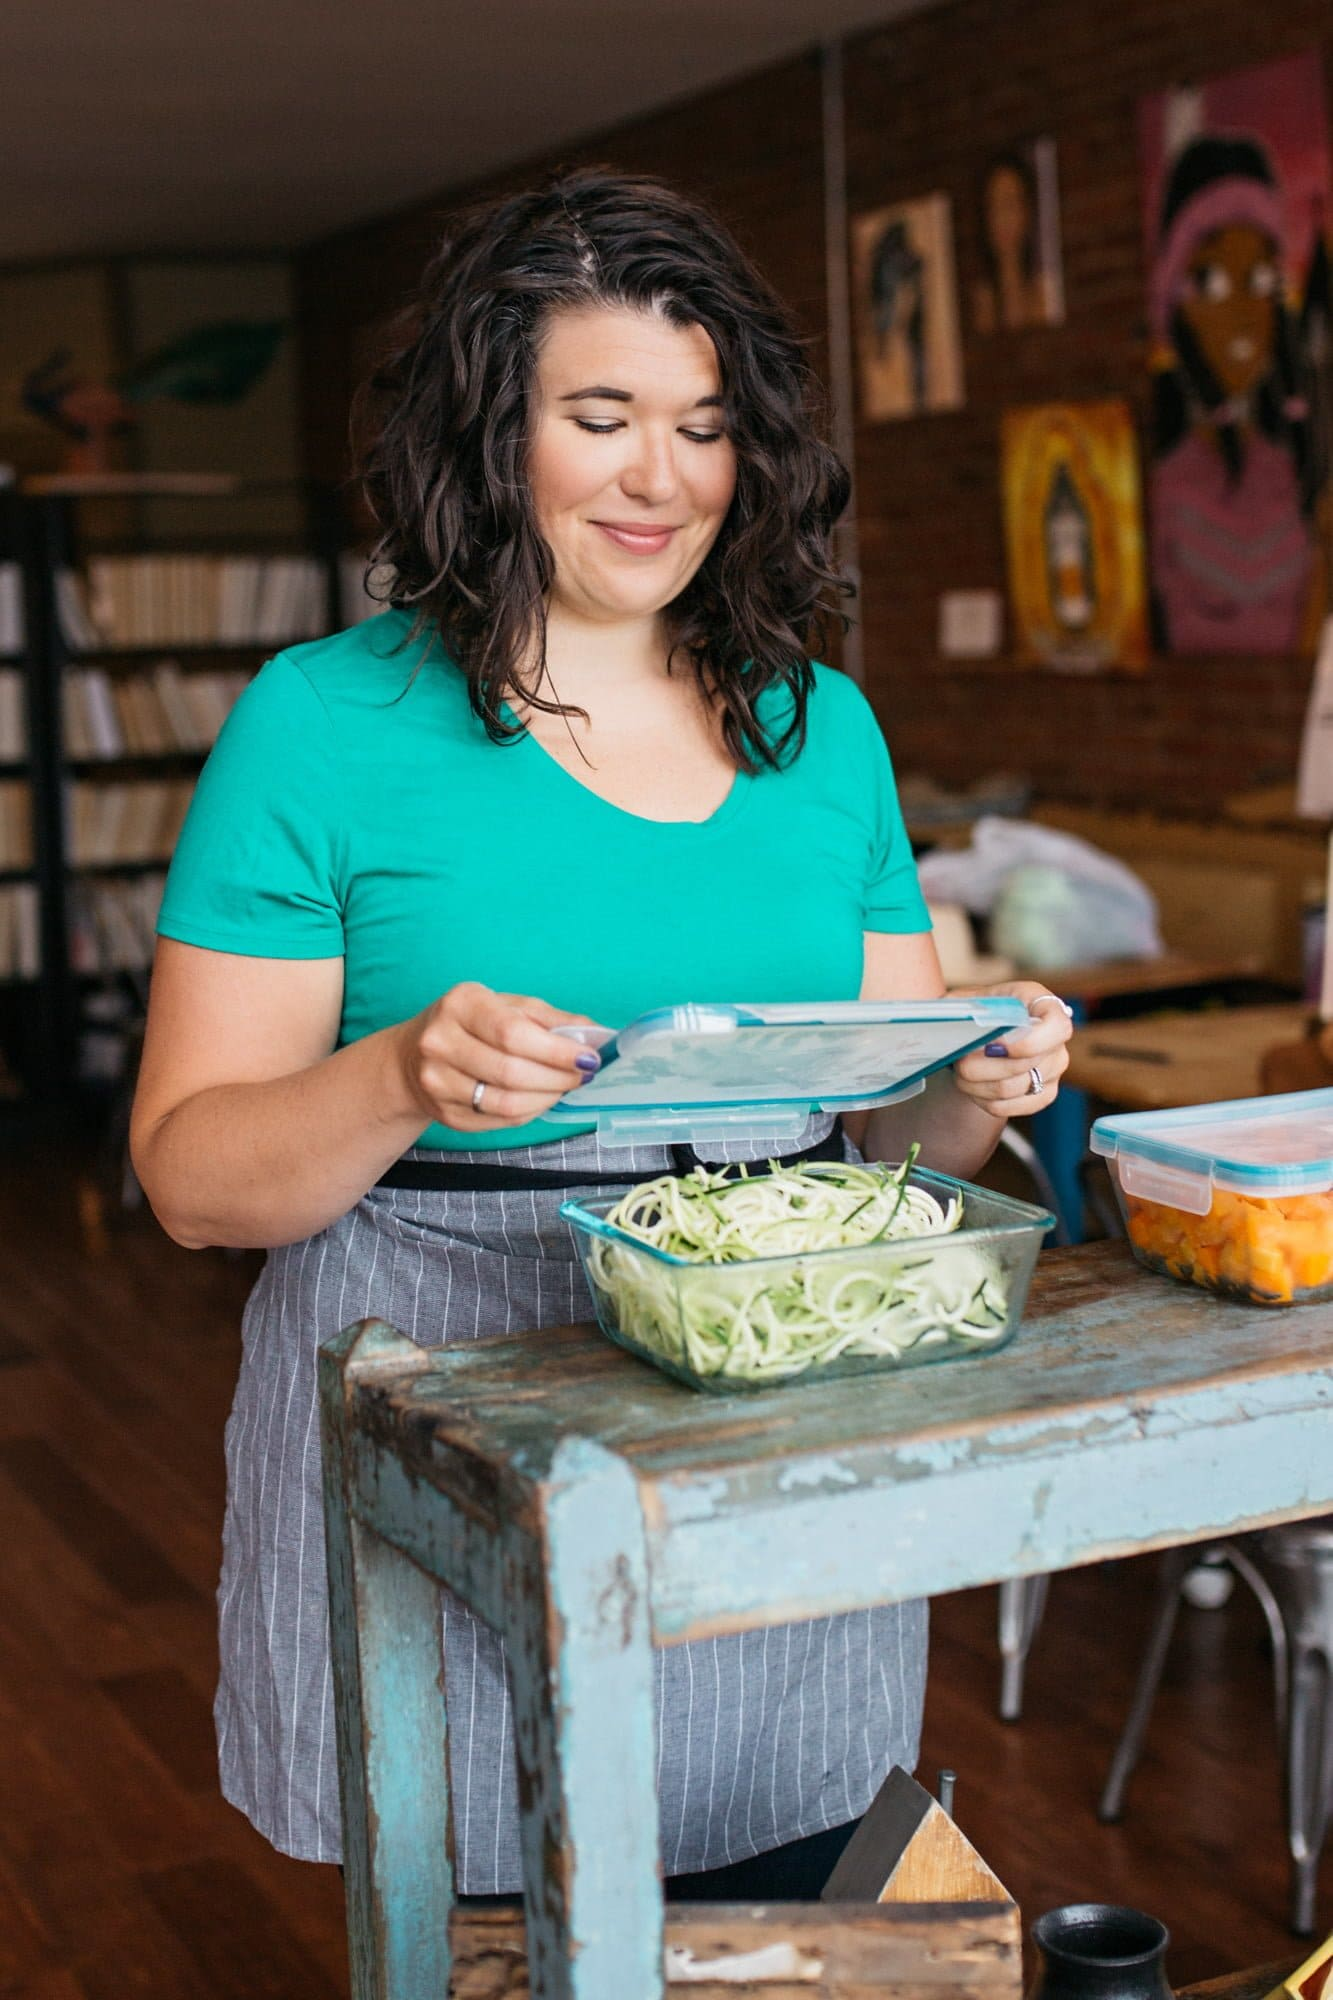 Brunette woman in a teal shirt putting the lid on a glass container filled with zucchini noodles.